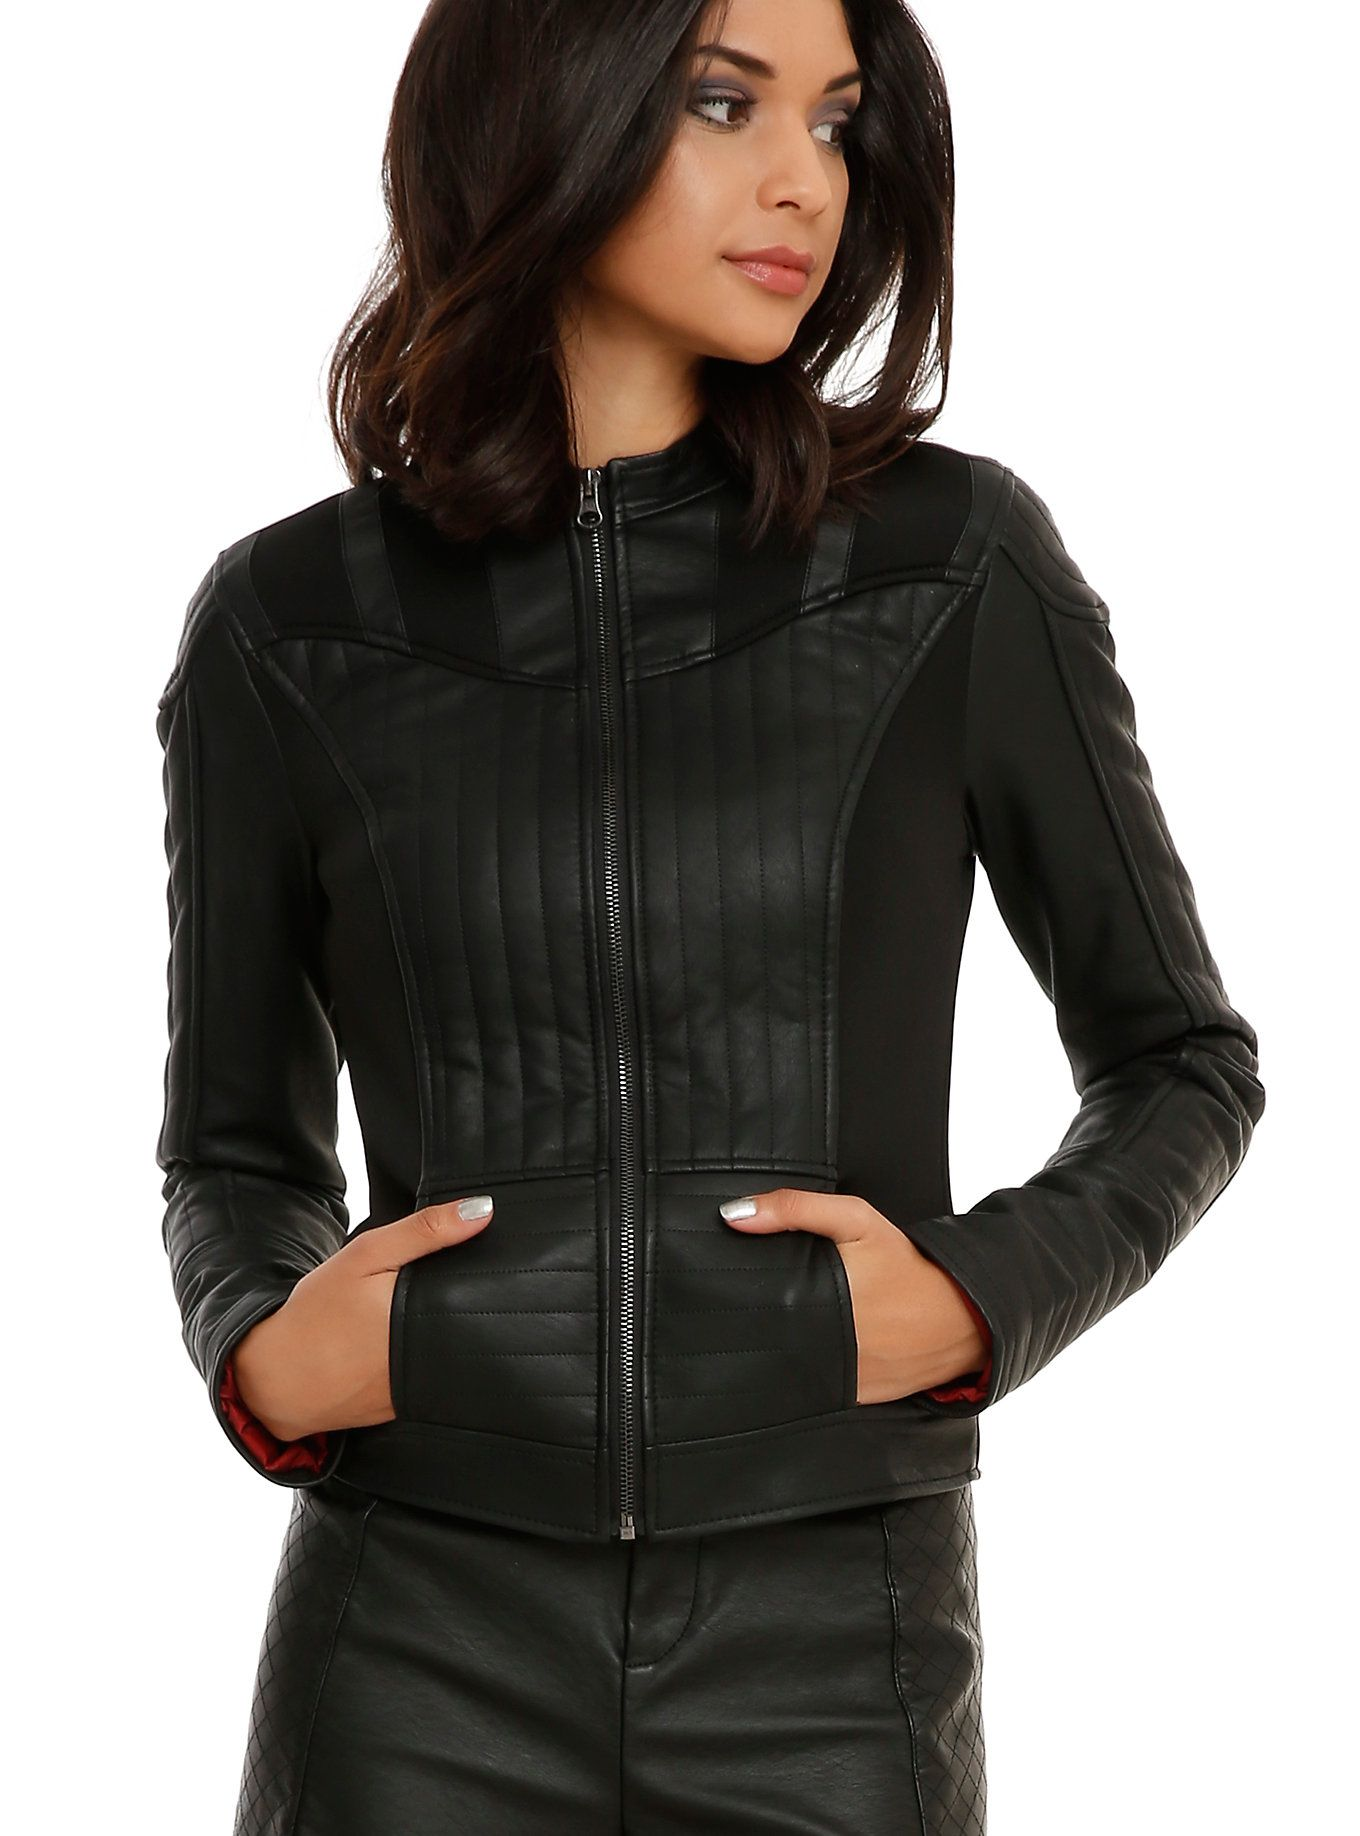 Her Universe Star Wars Darth Vader Girls Faux Leather Jacket ...